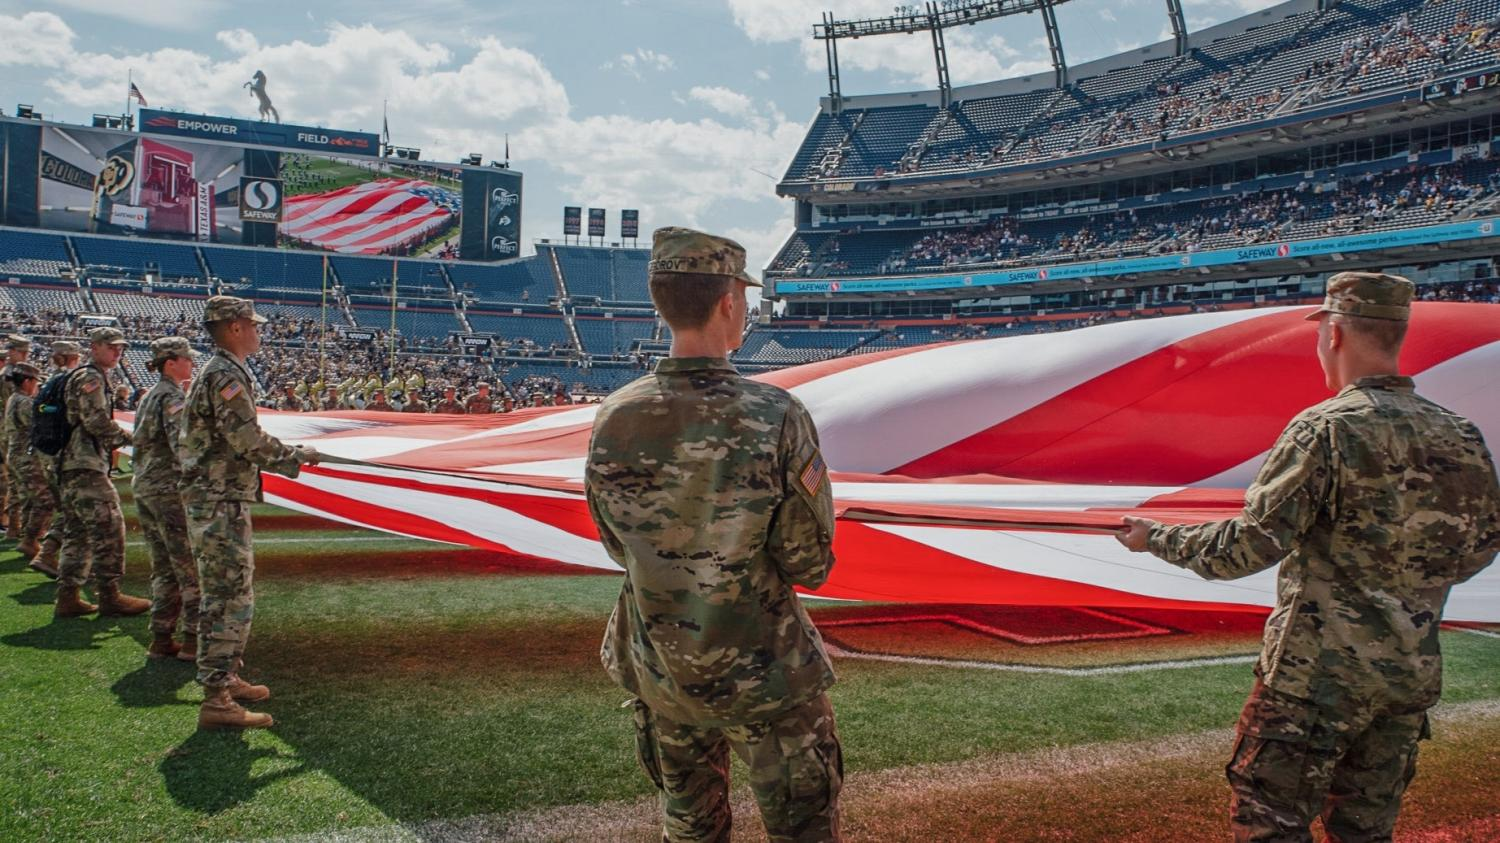 AROTC Cadets holding a large U.S. Flag on the field at Mile High for the 9/11 remembrance event. Photo courtesy of Cadet Decker.